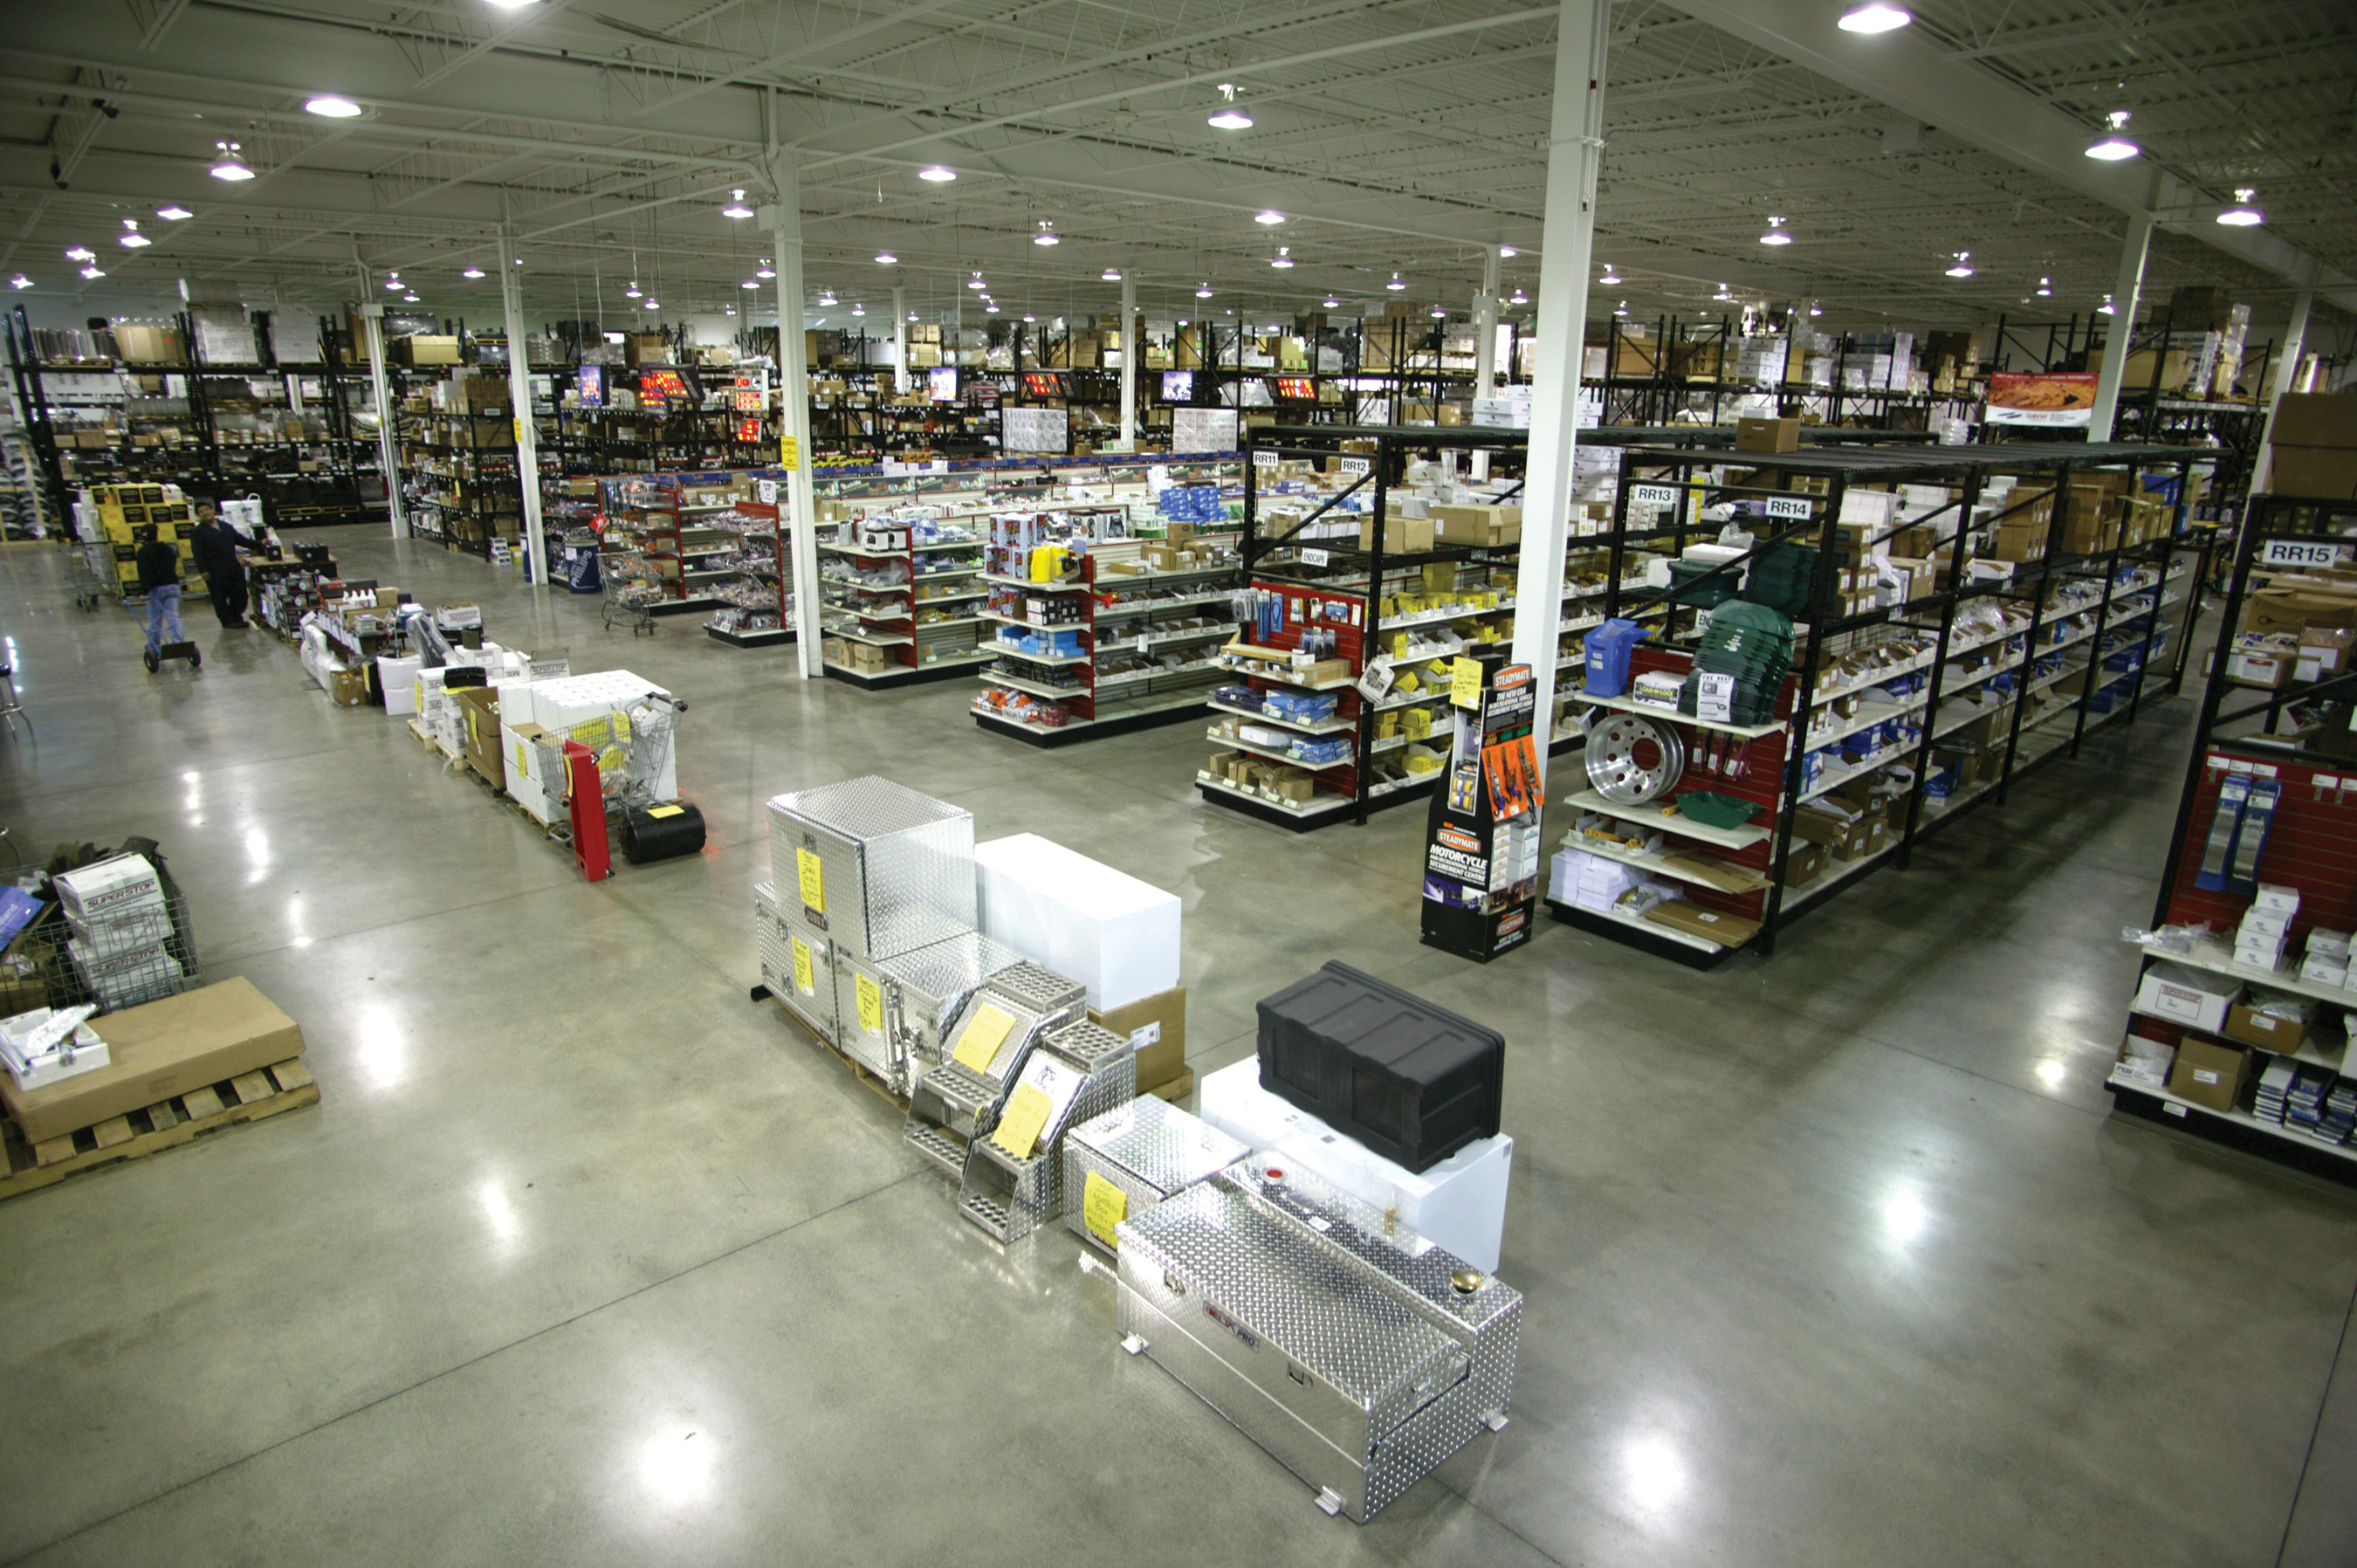 Exciting Careers in Parts and Warehousing